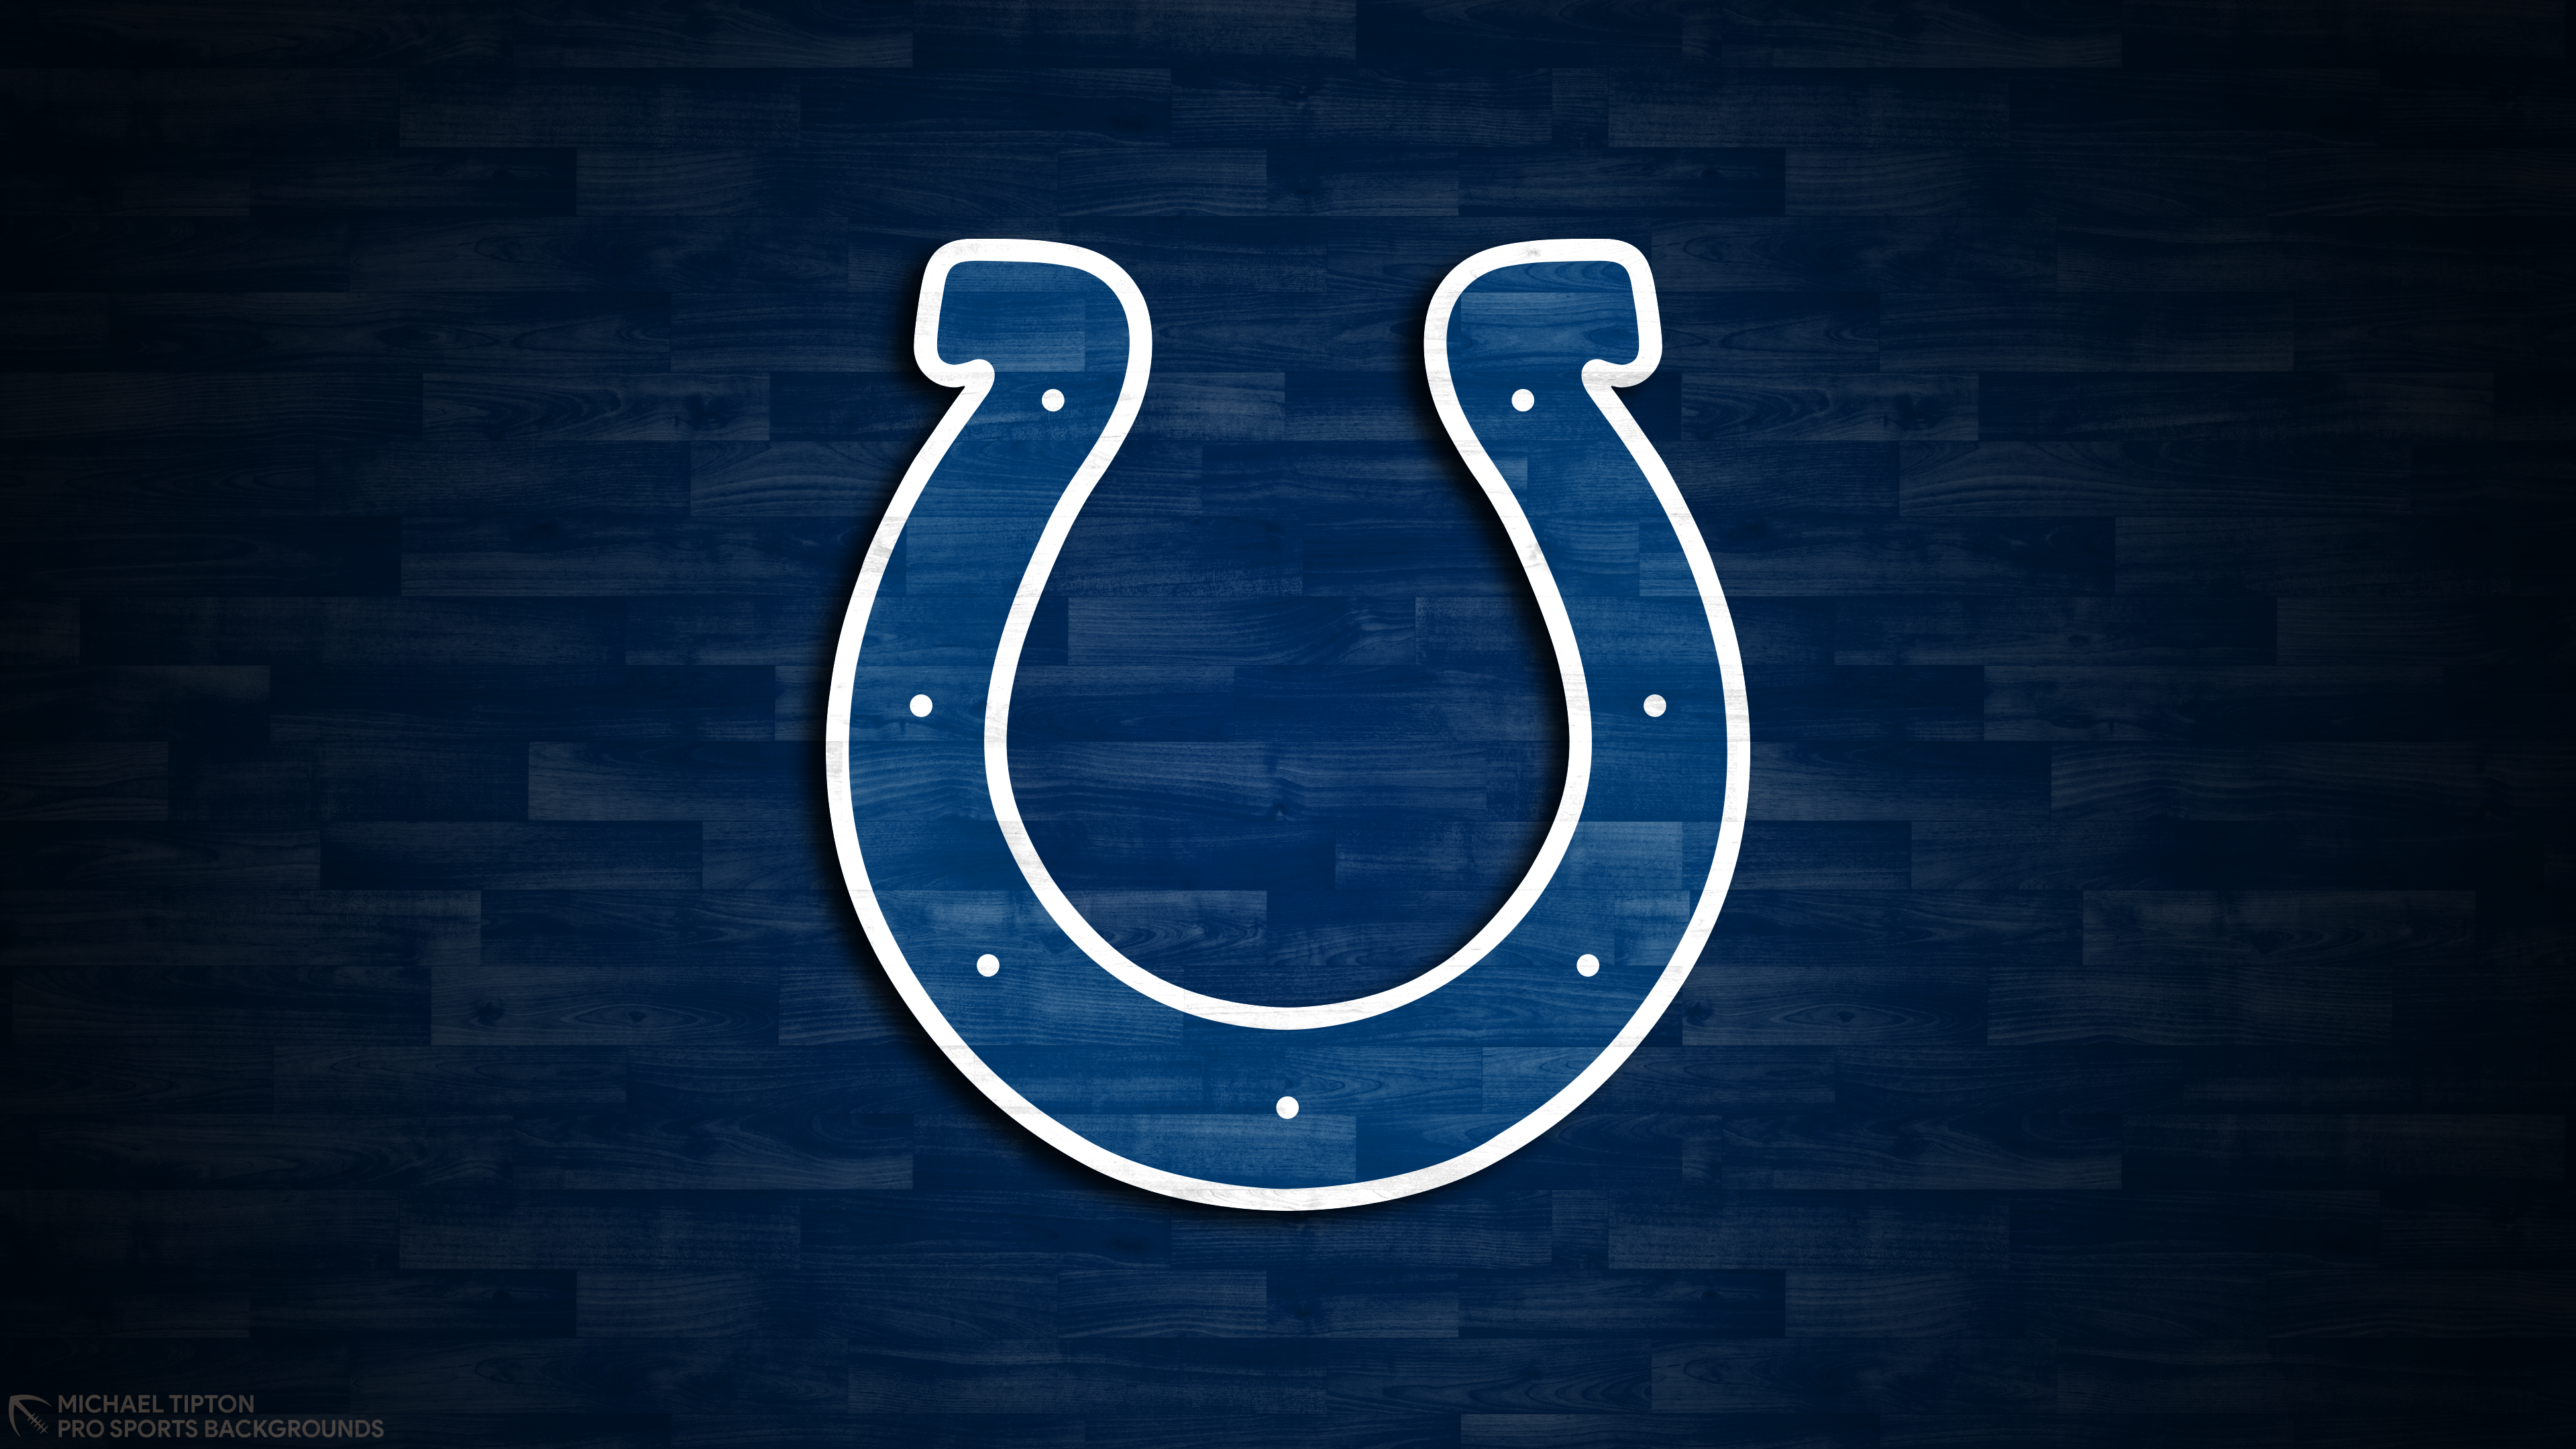 2019 Indianapolis Colts Wallpapers Pro Sports Backgrounds 3840x2160